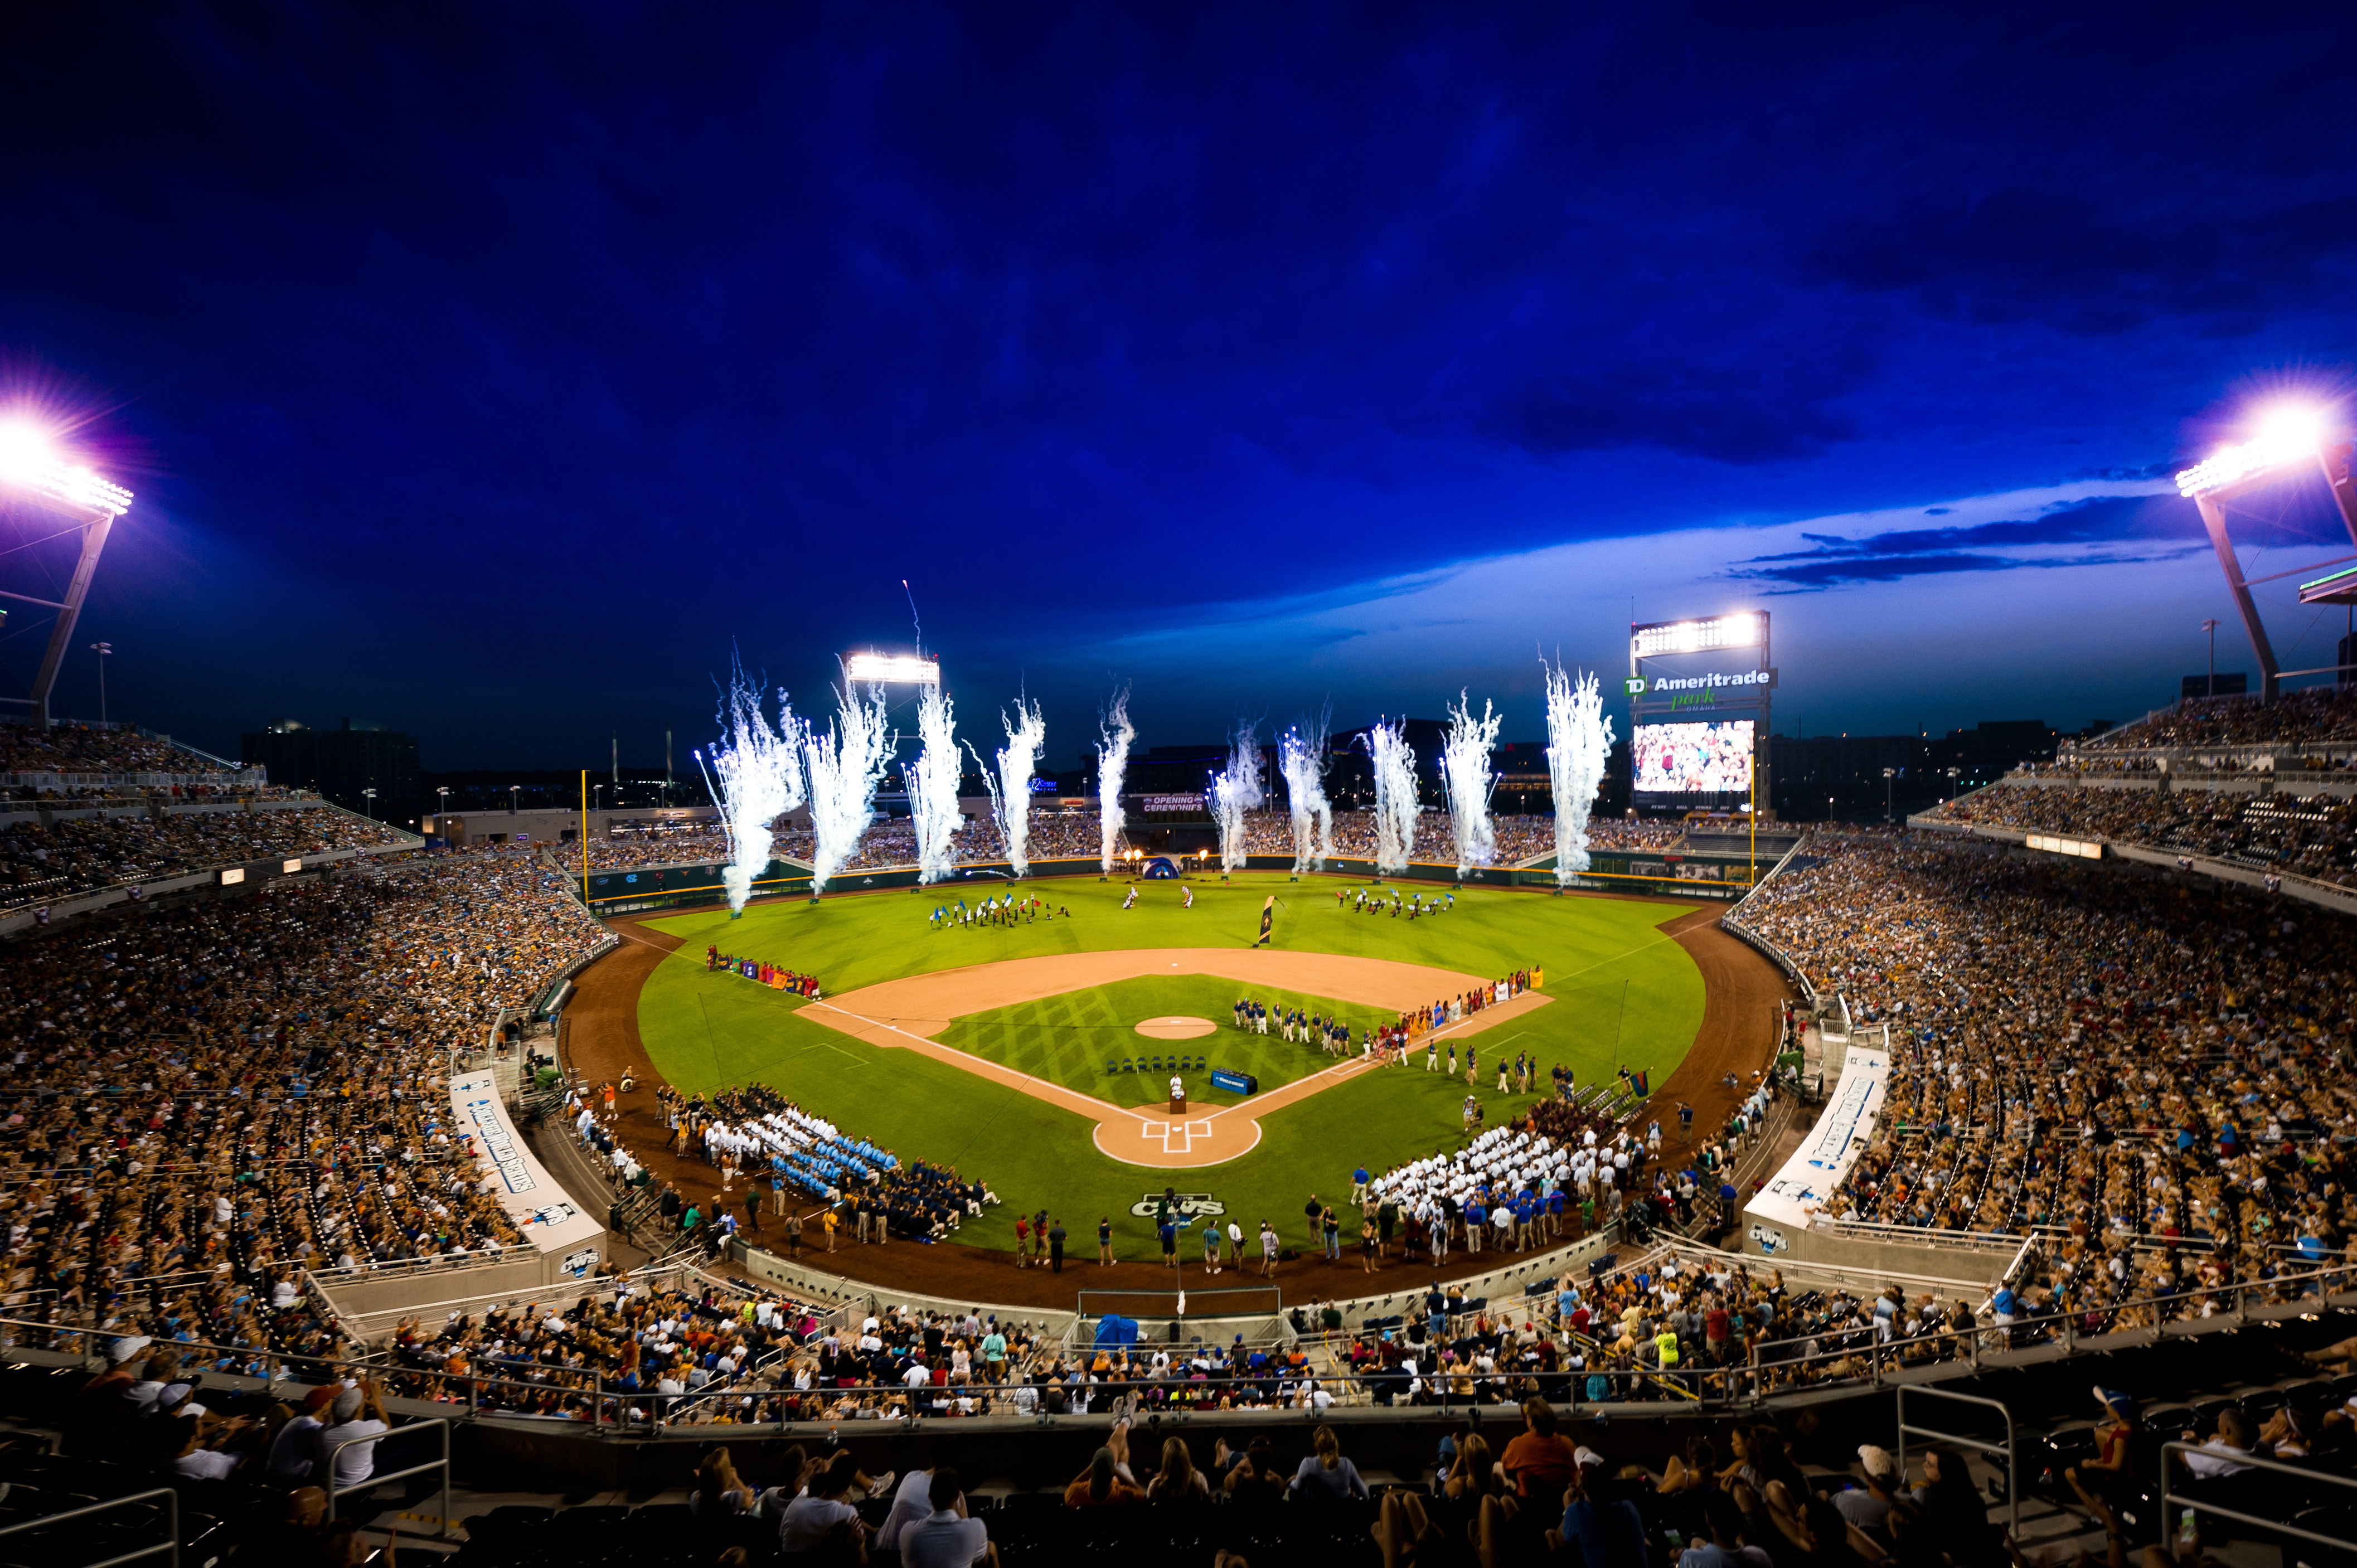 Christmas In July 2021 Omaha Baseball Omaha Annual Events World Series Festivals Cox Classic